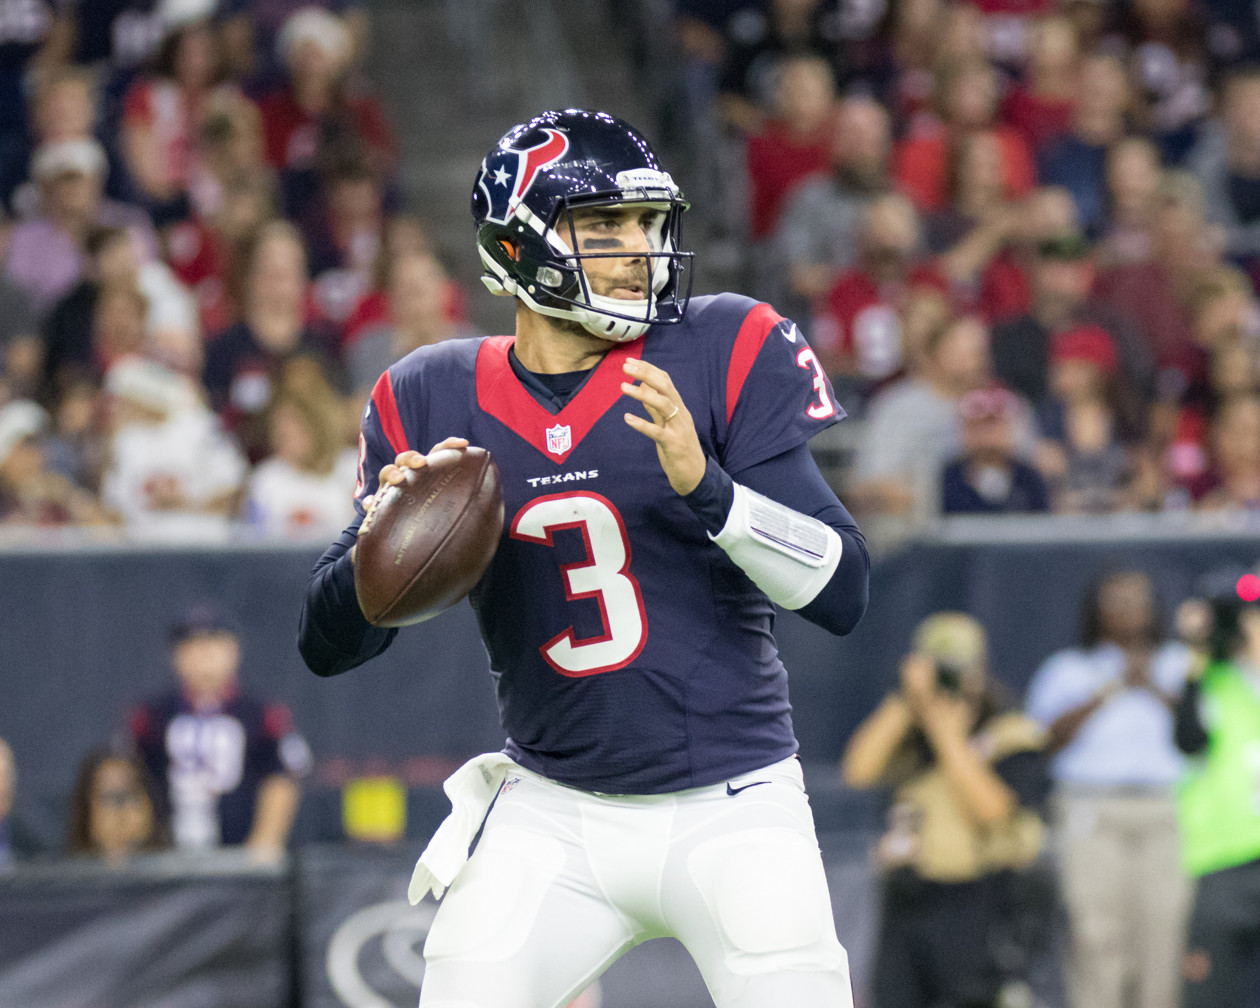 Houston Texans quarterback Tom Savage (3) drops back to pass during the first half of an NFL football game between the Houston Texans and the Cincinnati Bengals at NRG Stadium in Houston, Texas.